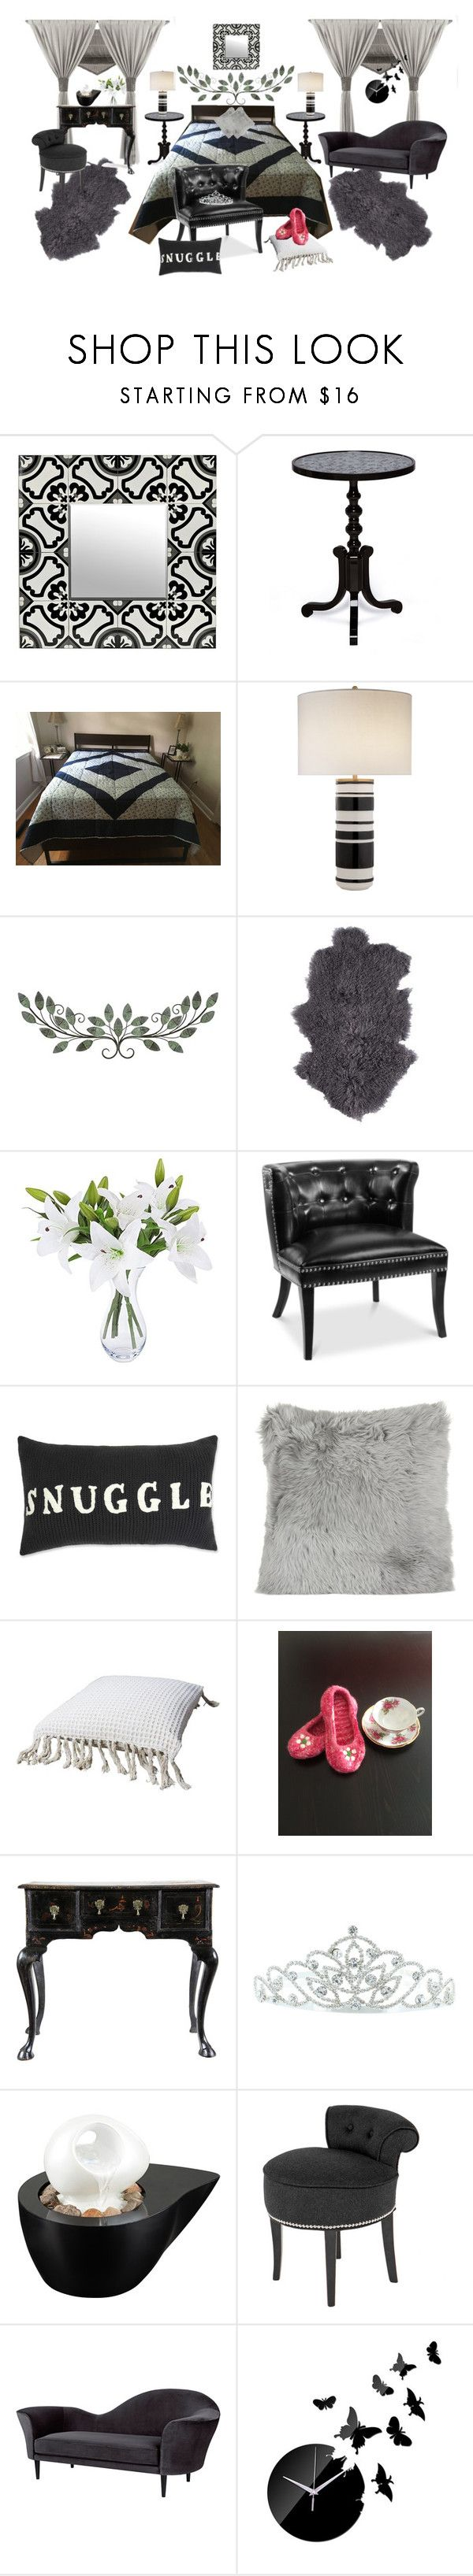 """""""Handmade Quilt and Slippers"""" by bamasbabes on Polyvore featuring A by Amara, Kate Marie, John Timberland, Eichholtz and Gubi"""